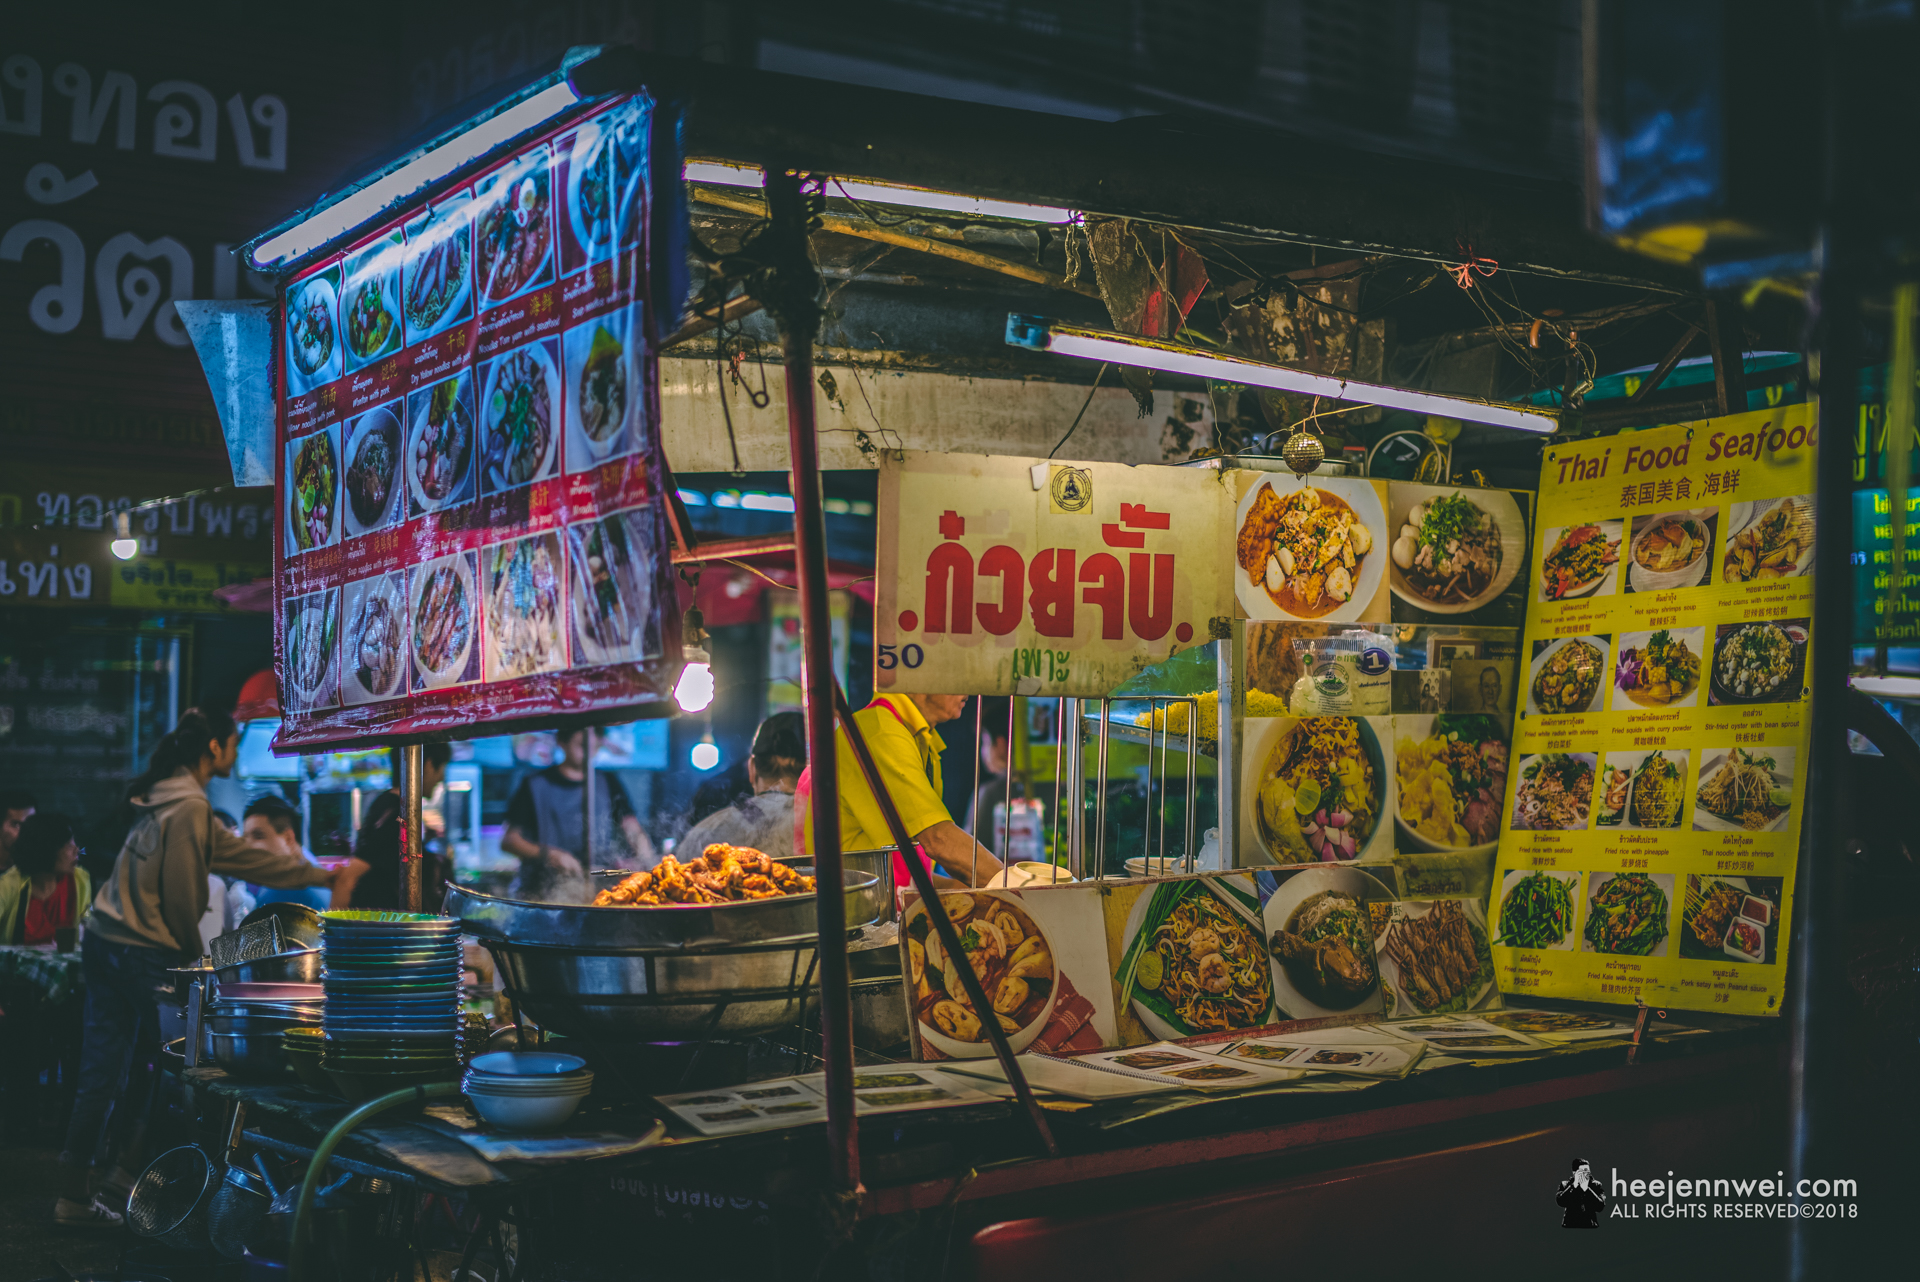 We also tried pad thai, khao soi noodle and grilled squid from this stall, not bad!